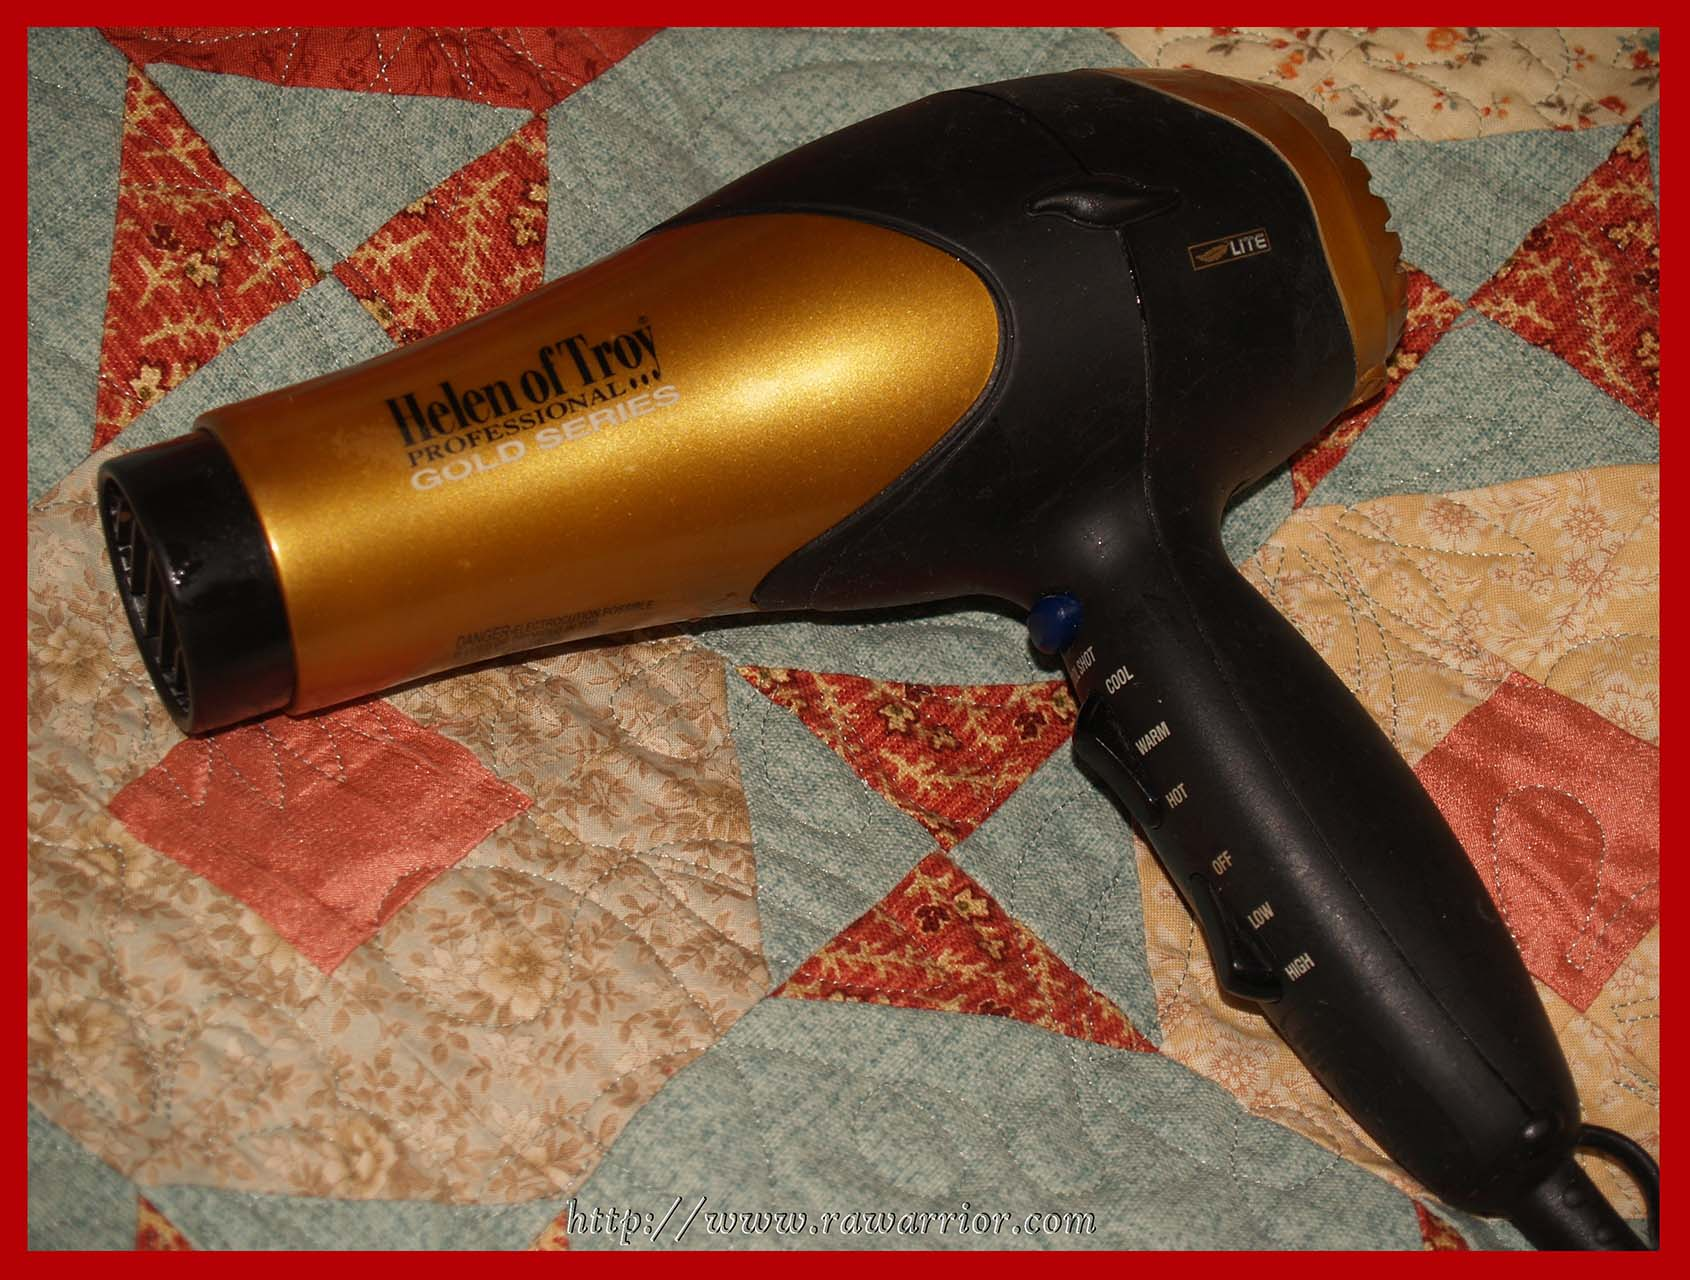 RA cured hair dryer